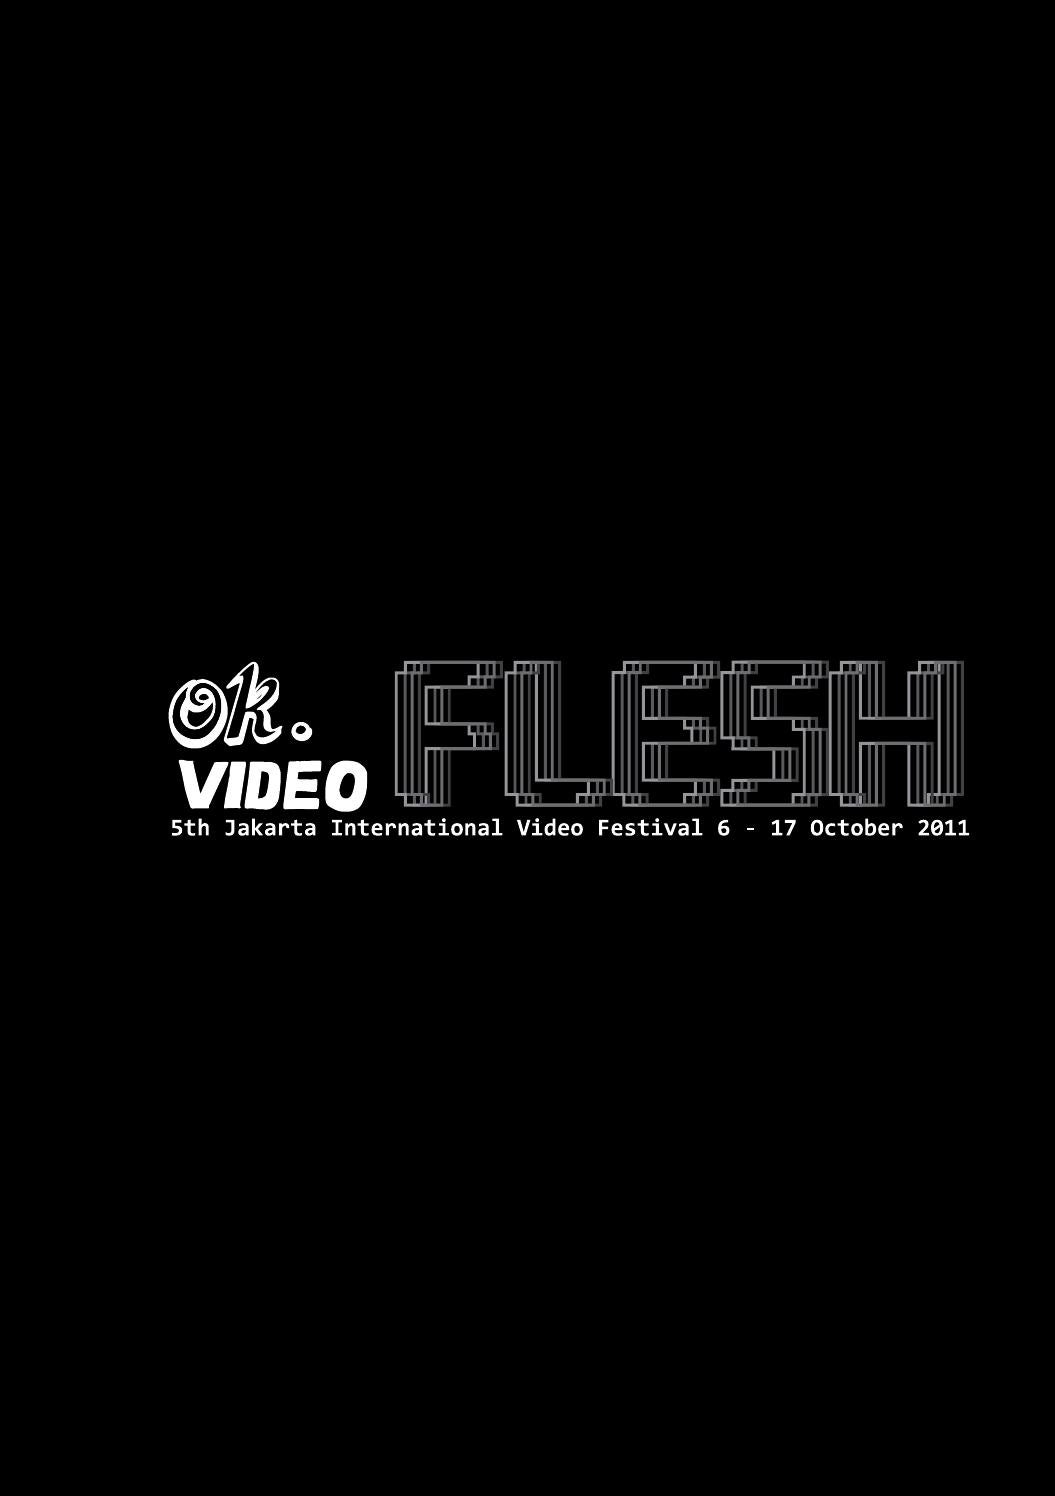 OK. Video FLESH - 5th Jakarta International Video Festival by OK ...